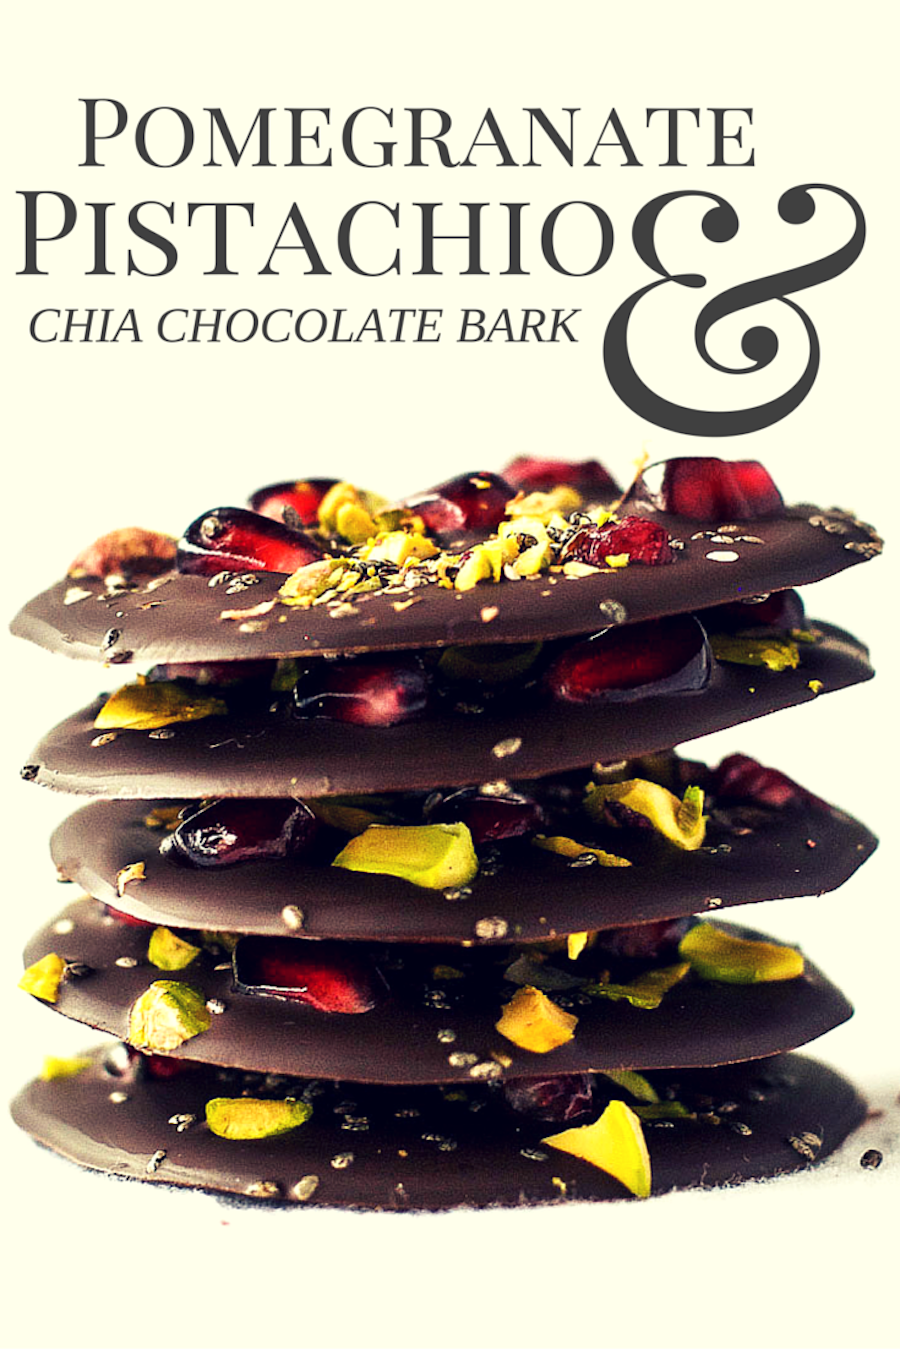 Pomegranate pistachio chia chocolate bark